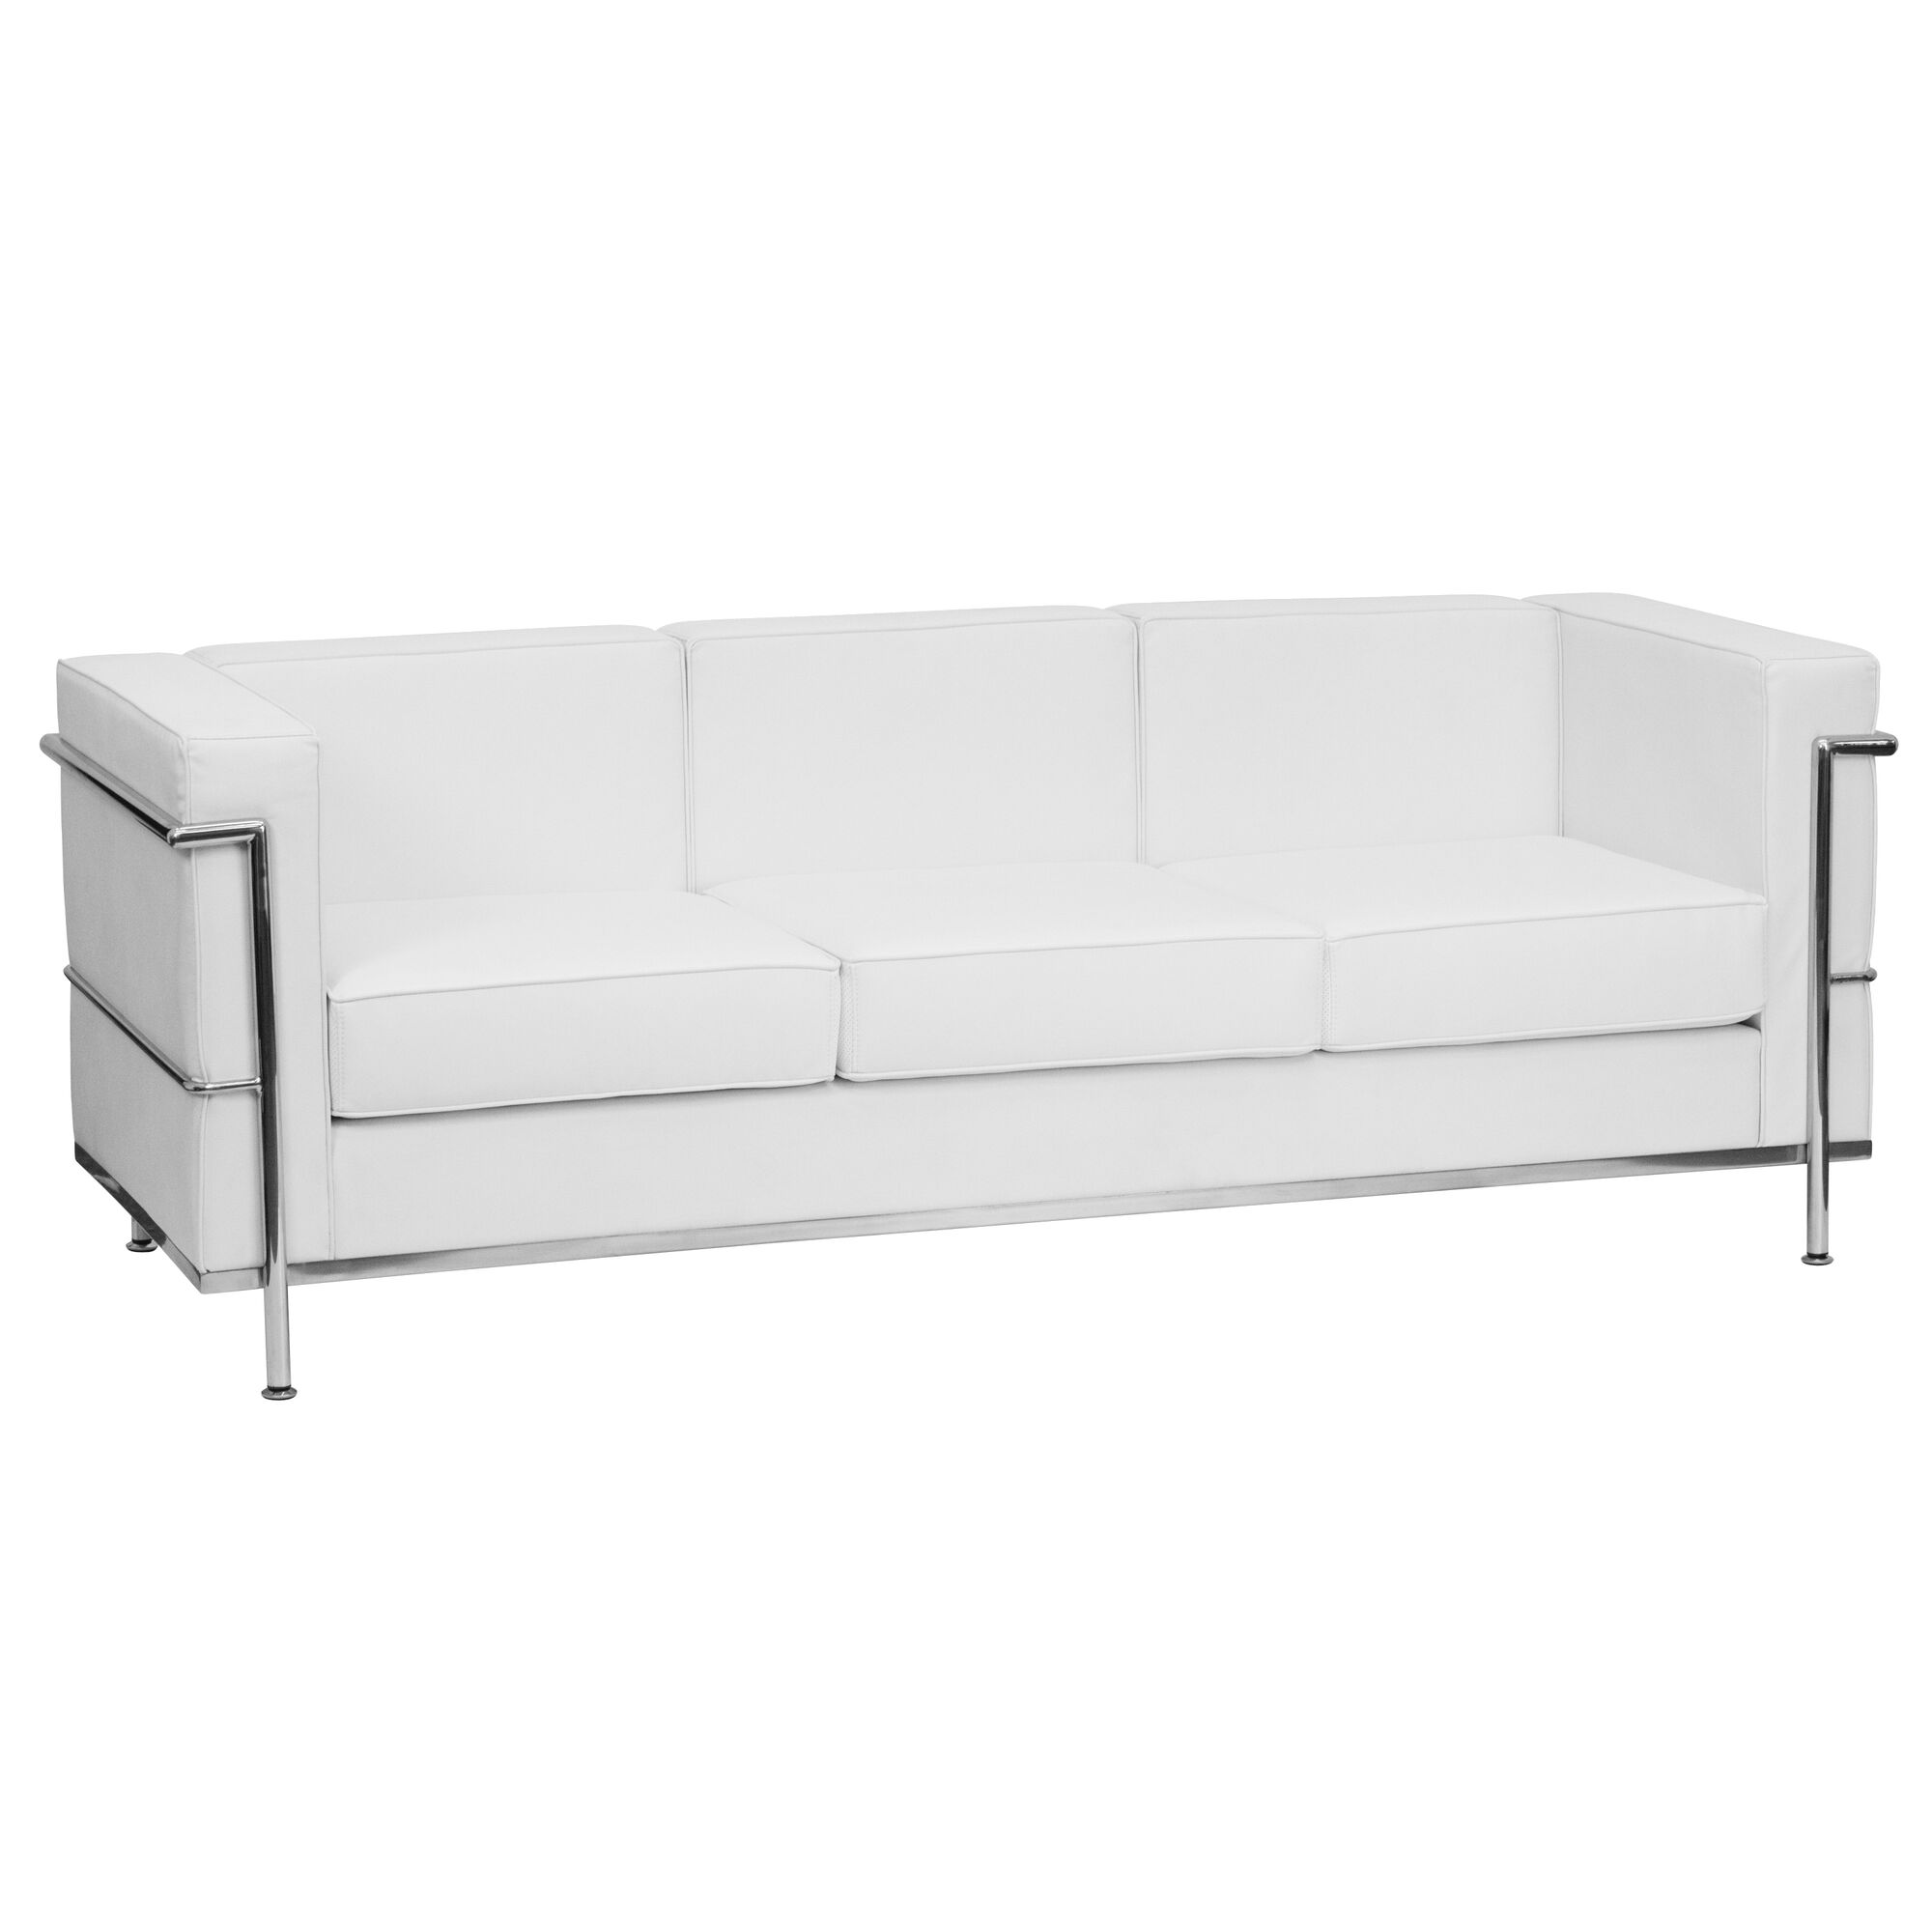 Our Hercules Regal Series Contemporary Melrose White